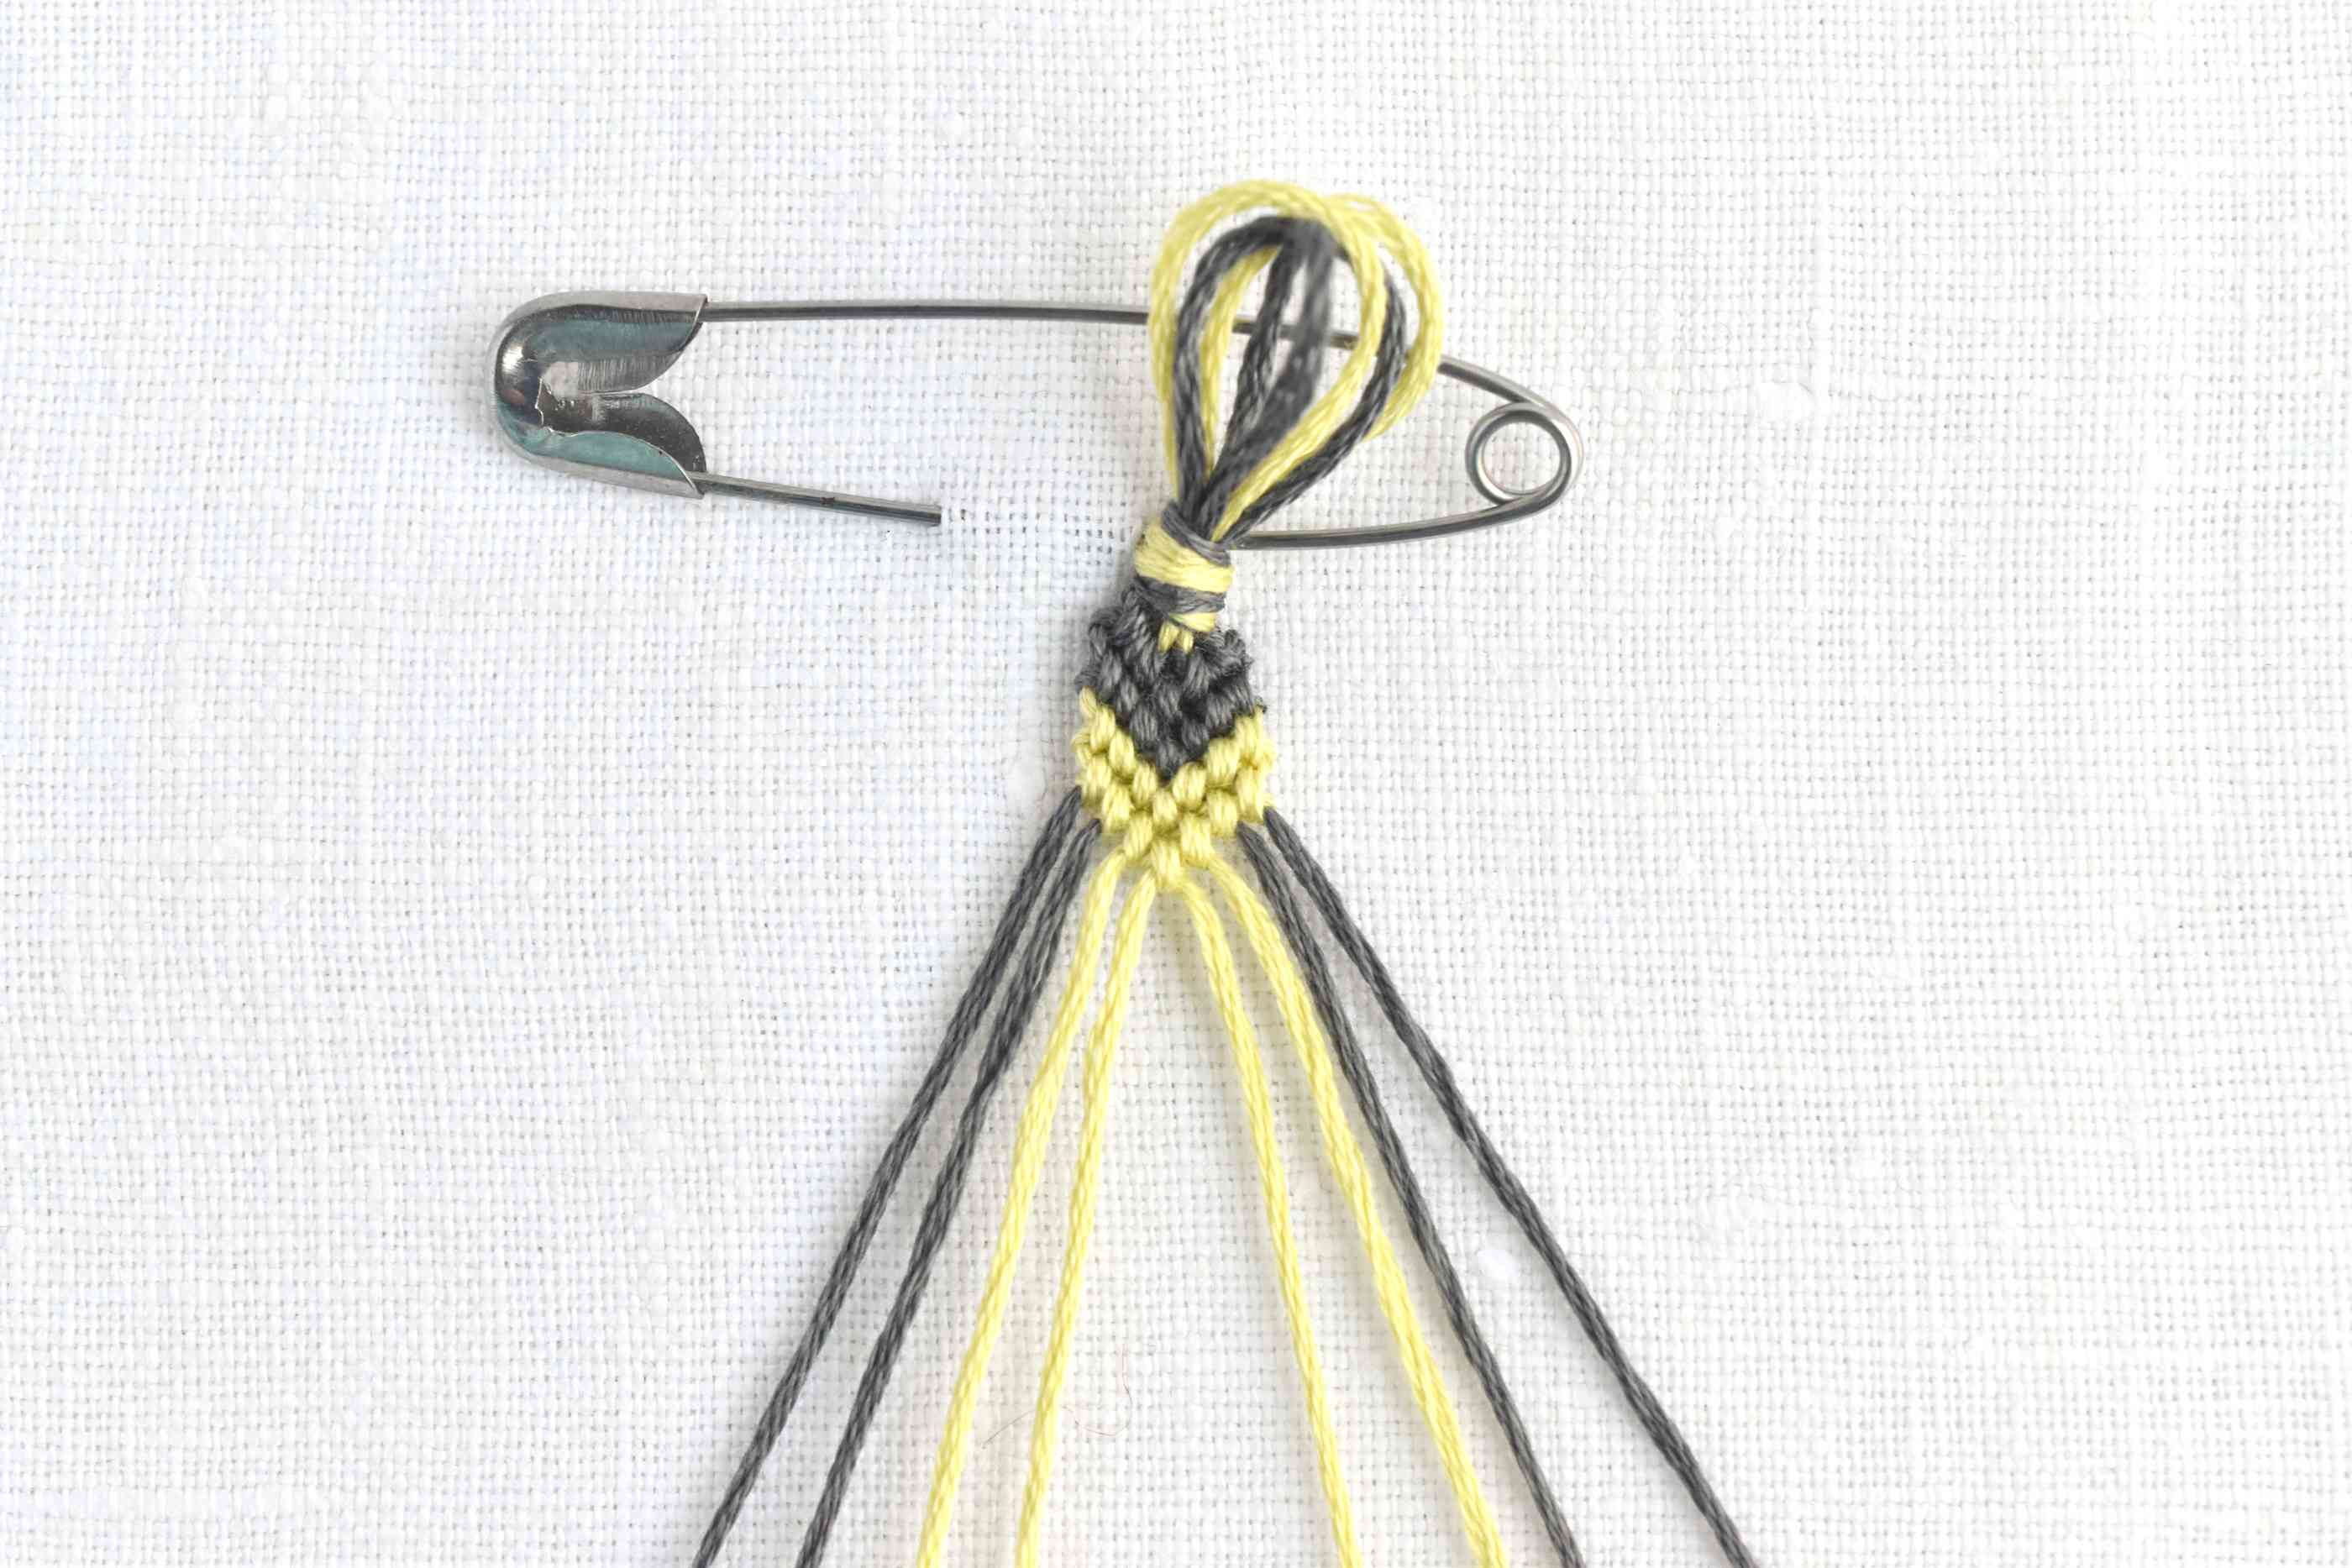 Repeat the process to add rows of knots